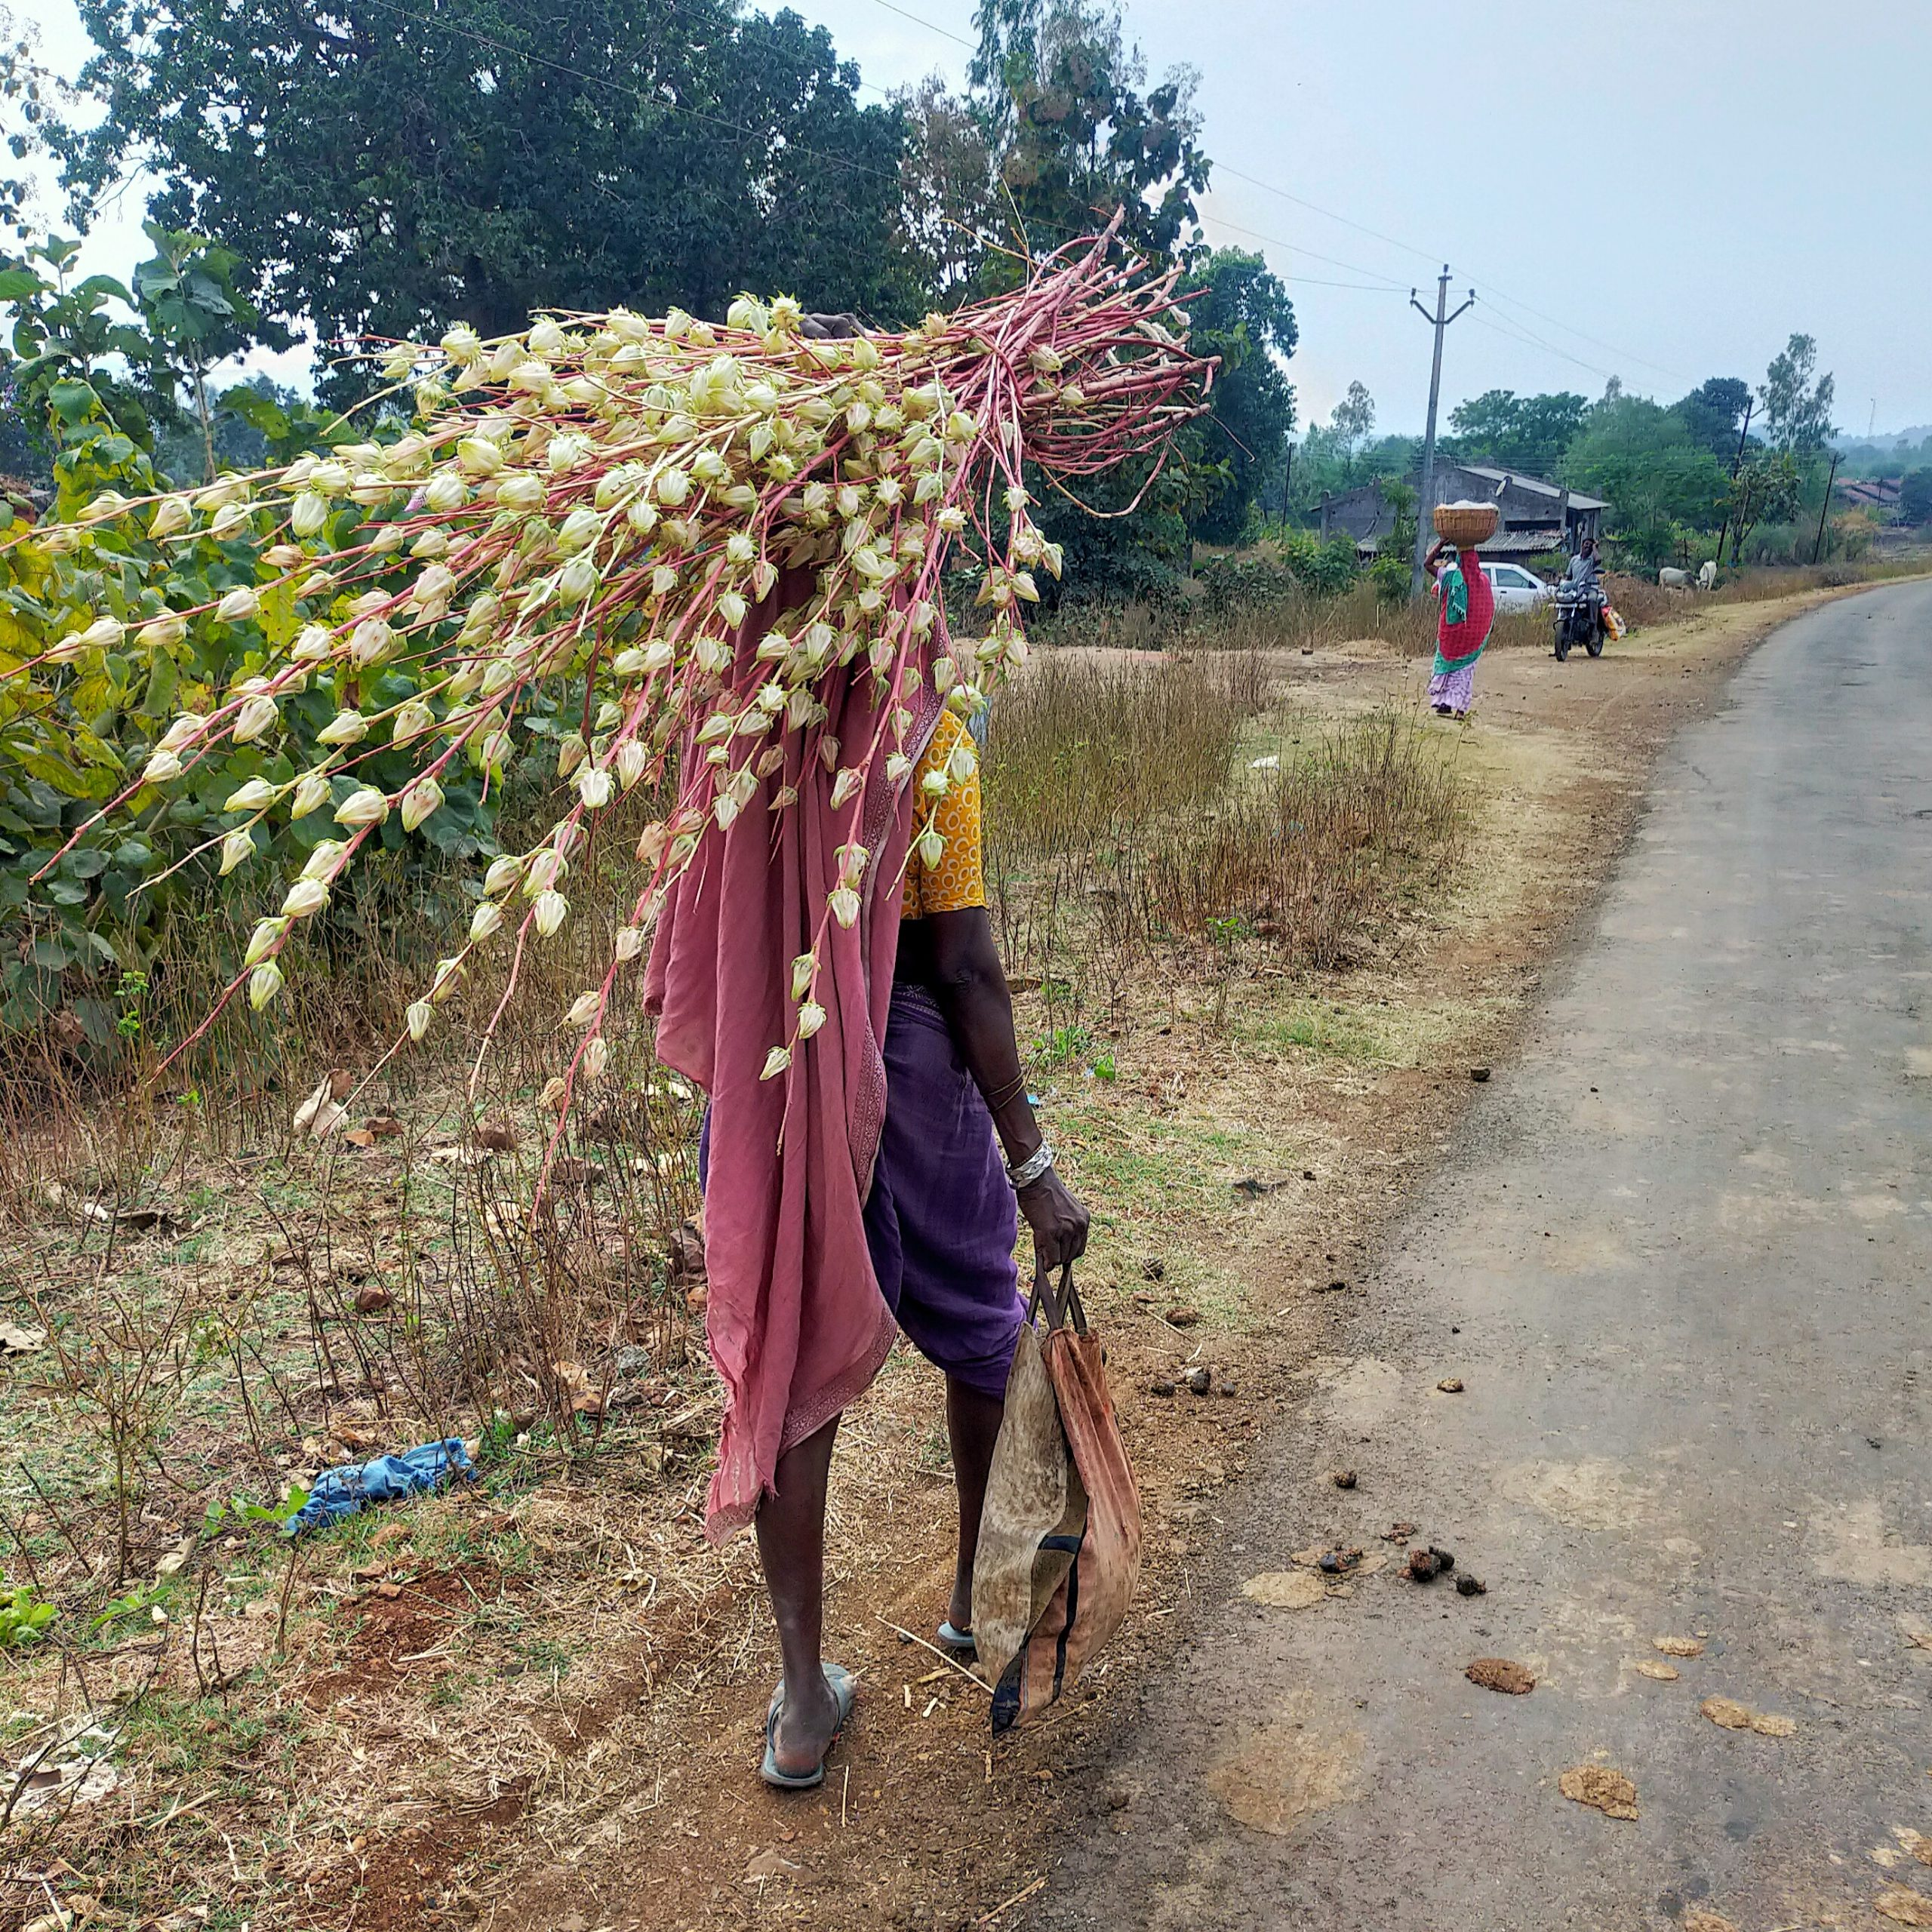 A female farmer carrying cut plants